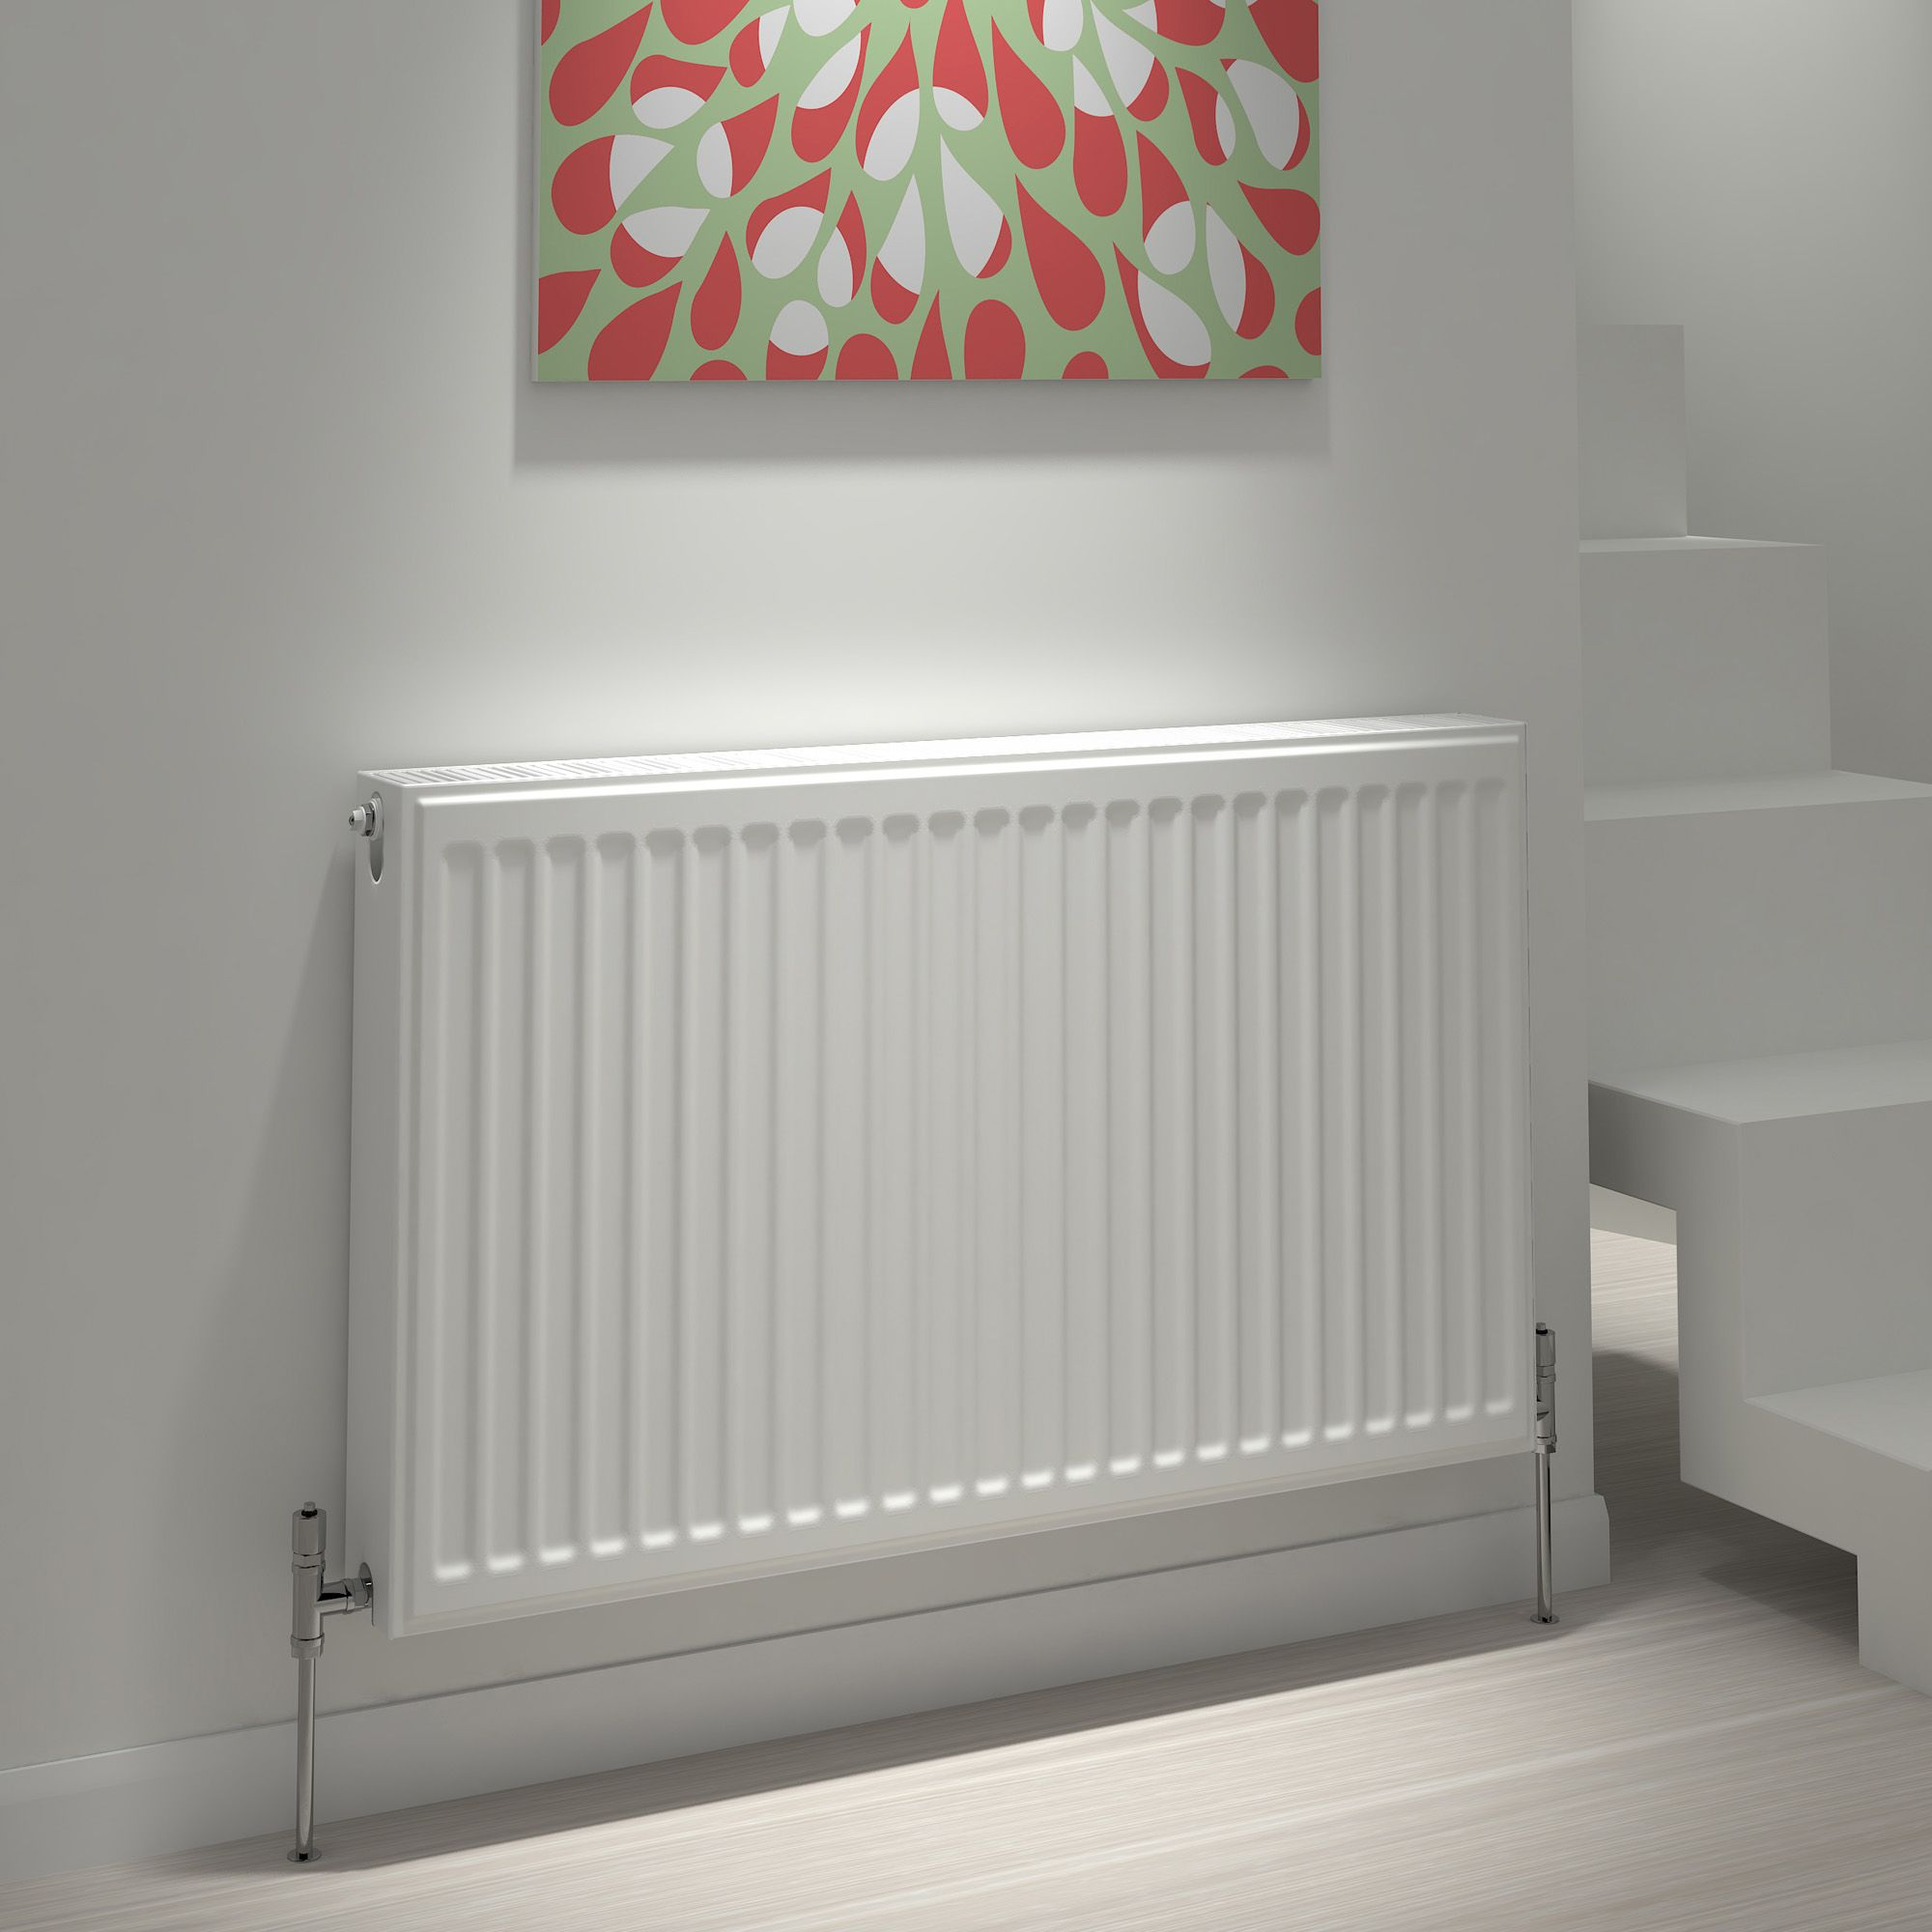 Kudox Type 11 Single Panel Radiator White H 600mm W